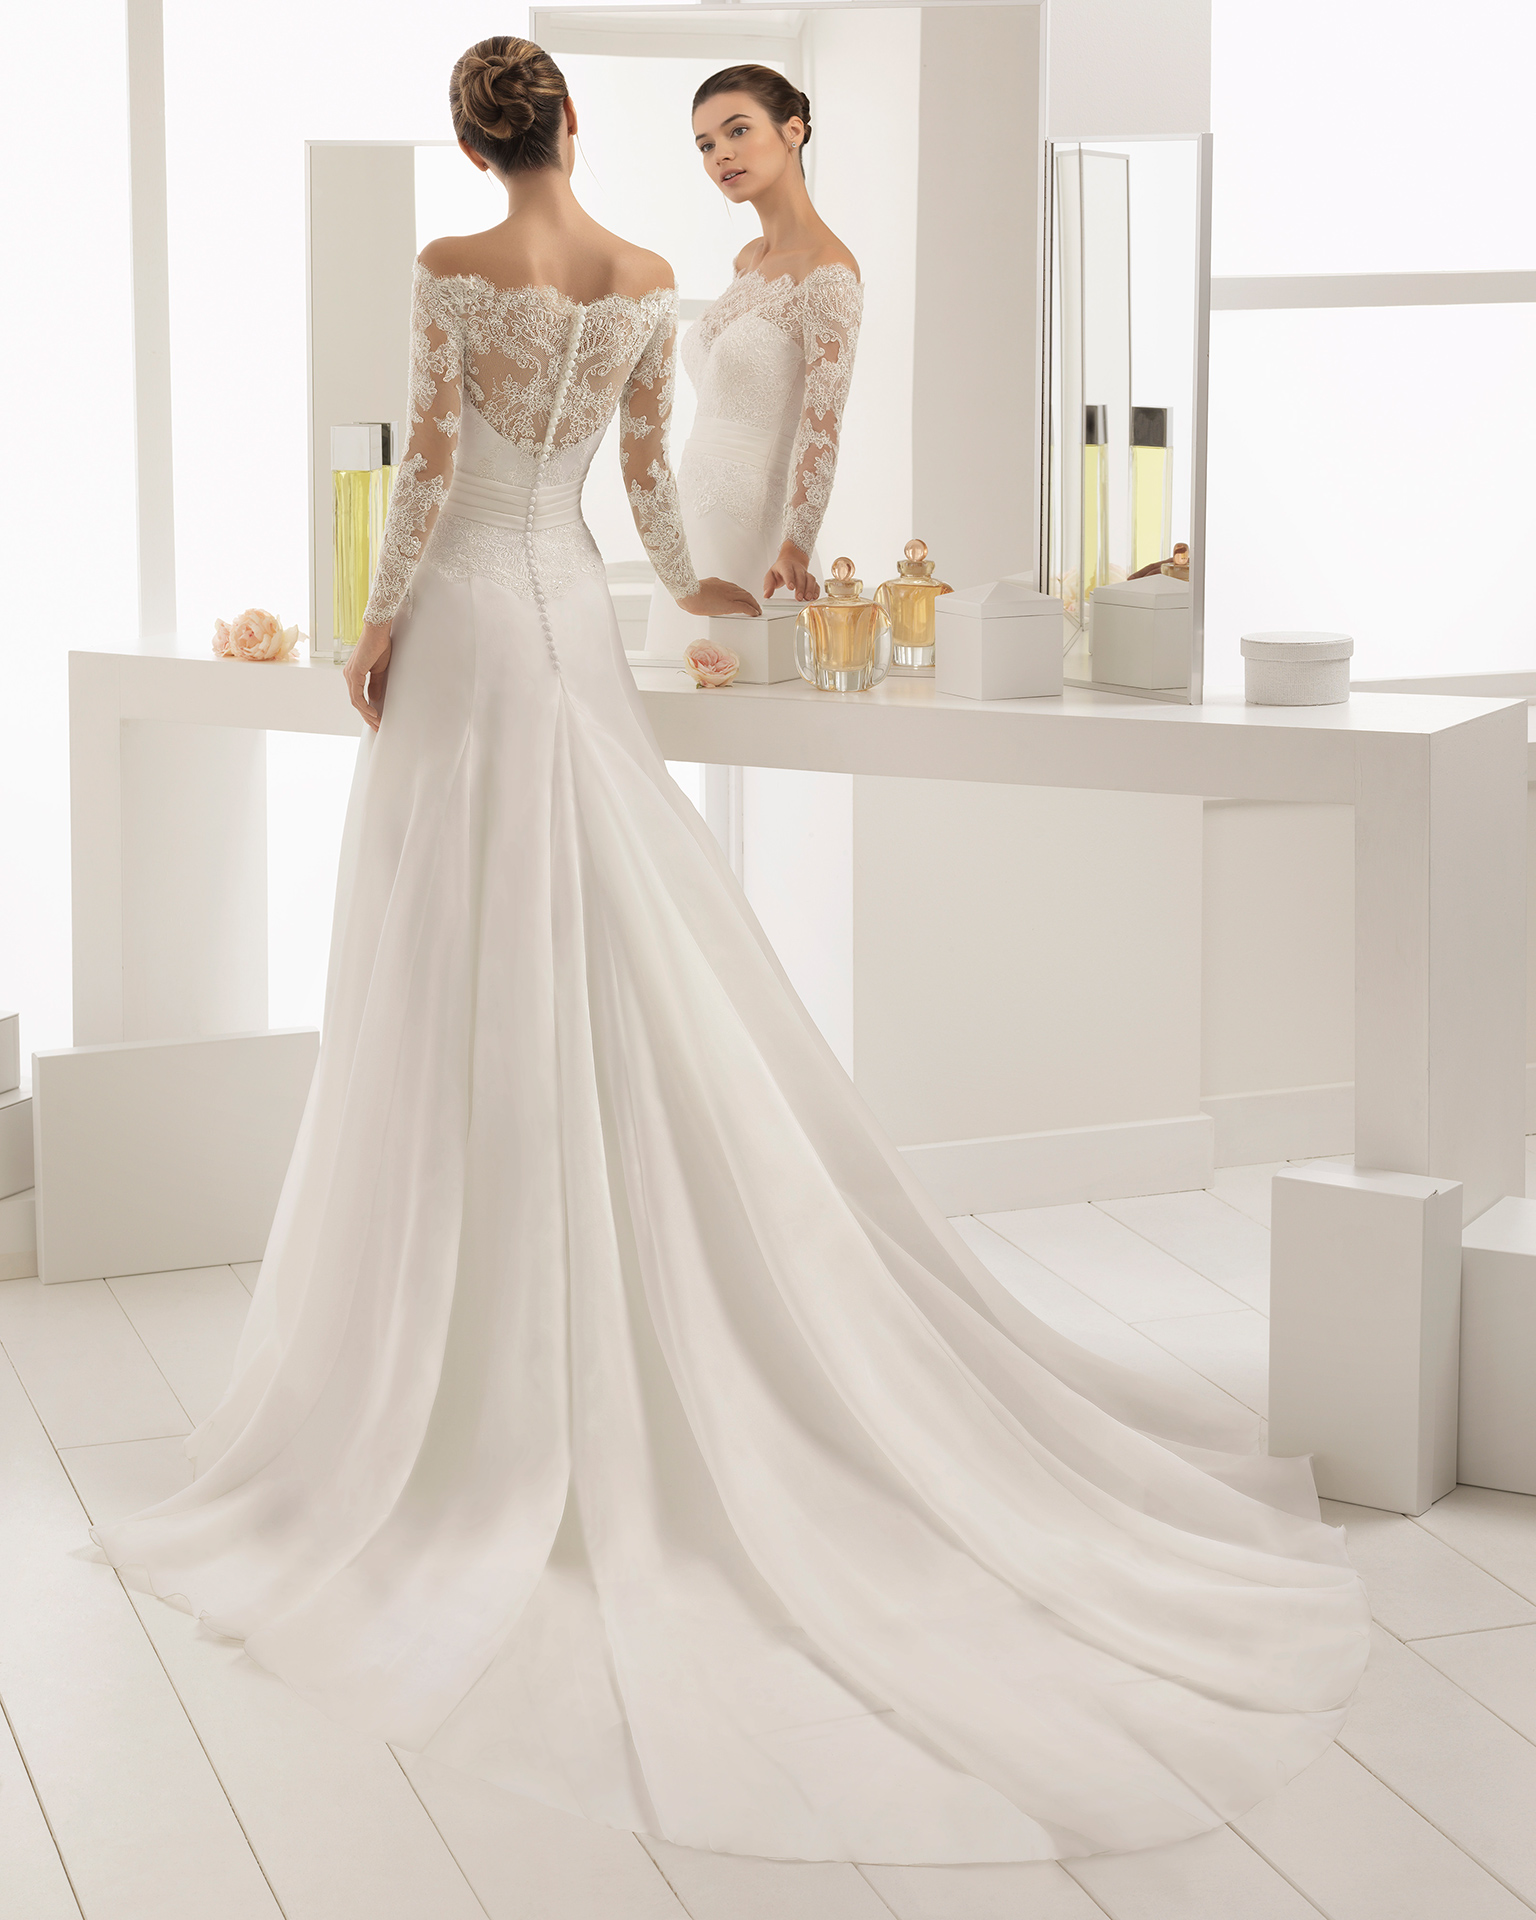 Romantic-style beaded lace and organza wedding dress with long sleeves and off-the-shoulder neckline.